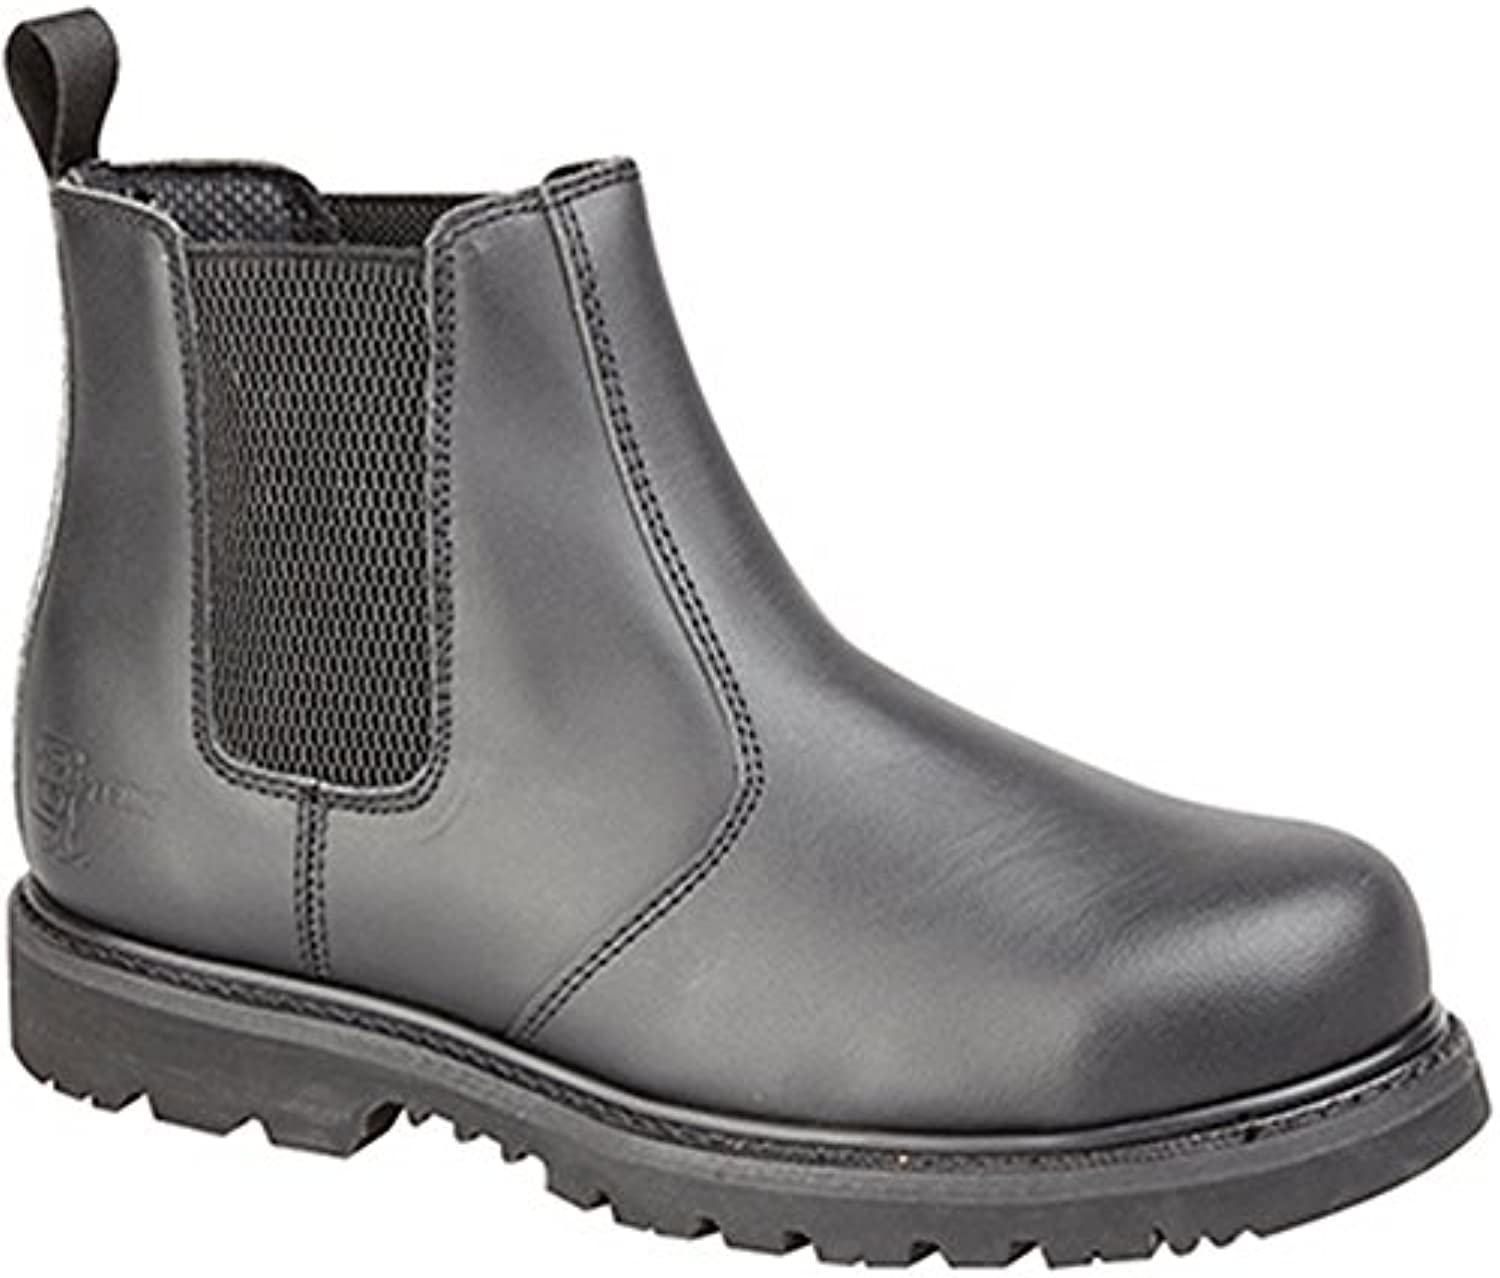 Grafters  Grafters Black Pull On Safety Boot   Herren Chelsea SchuheGrafters Safety Herren Chelsea Schuhe Schwarz